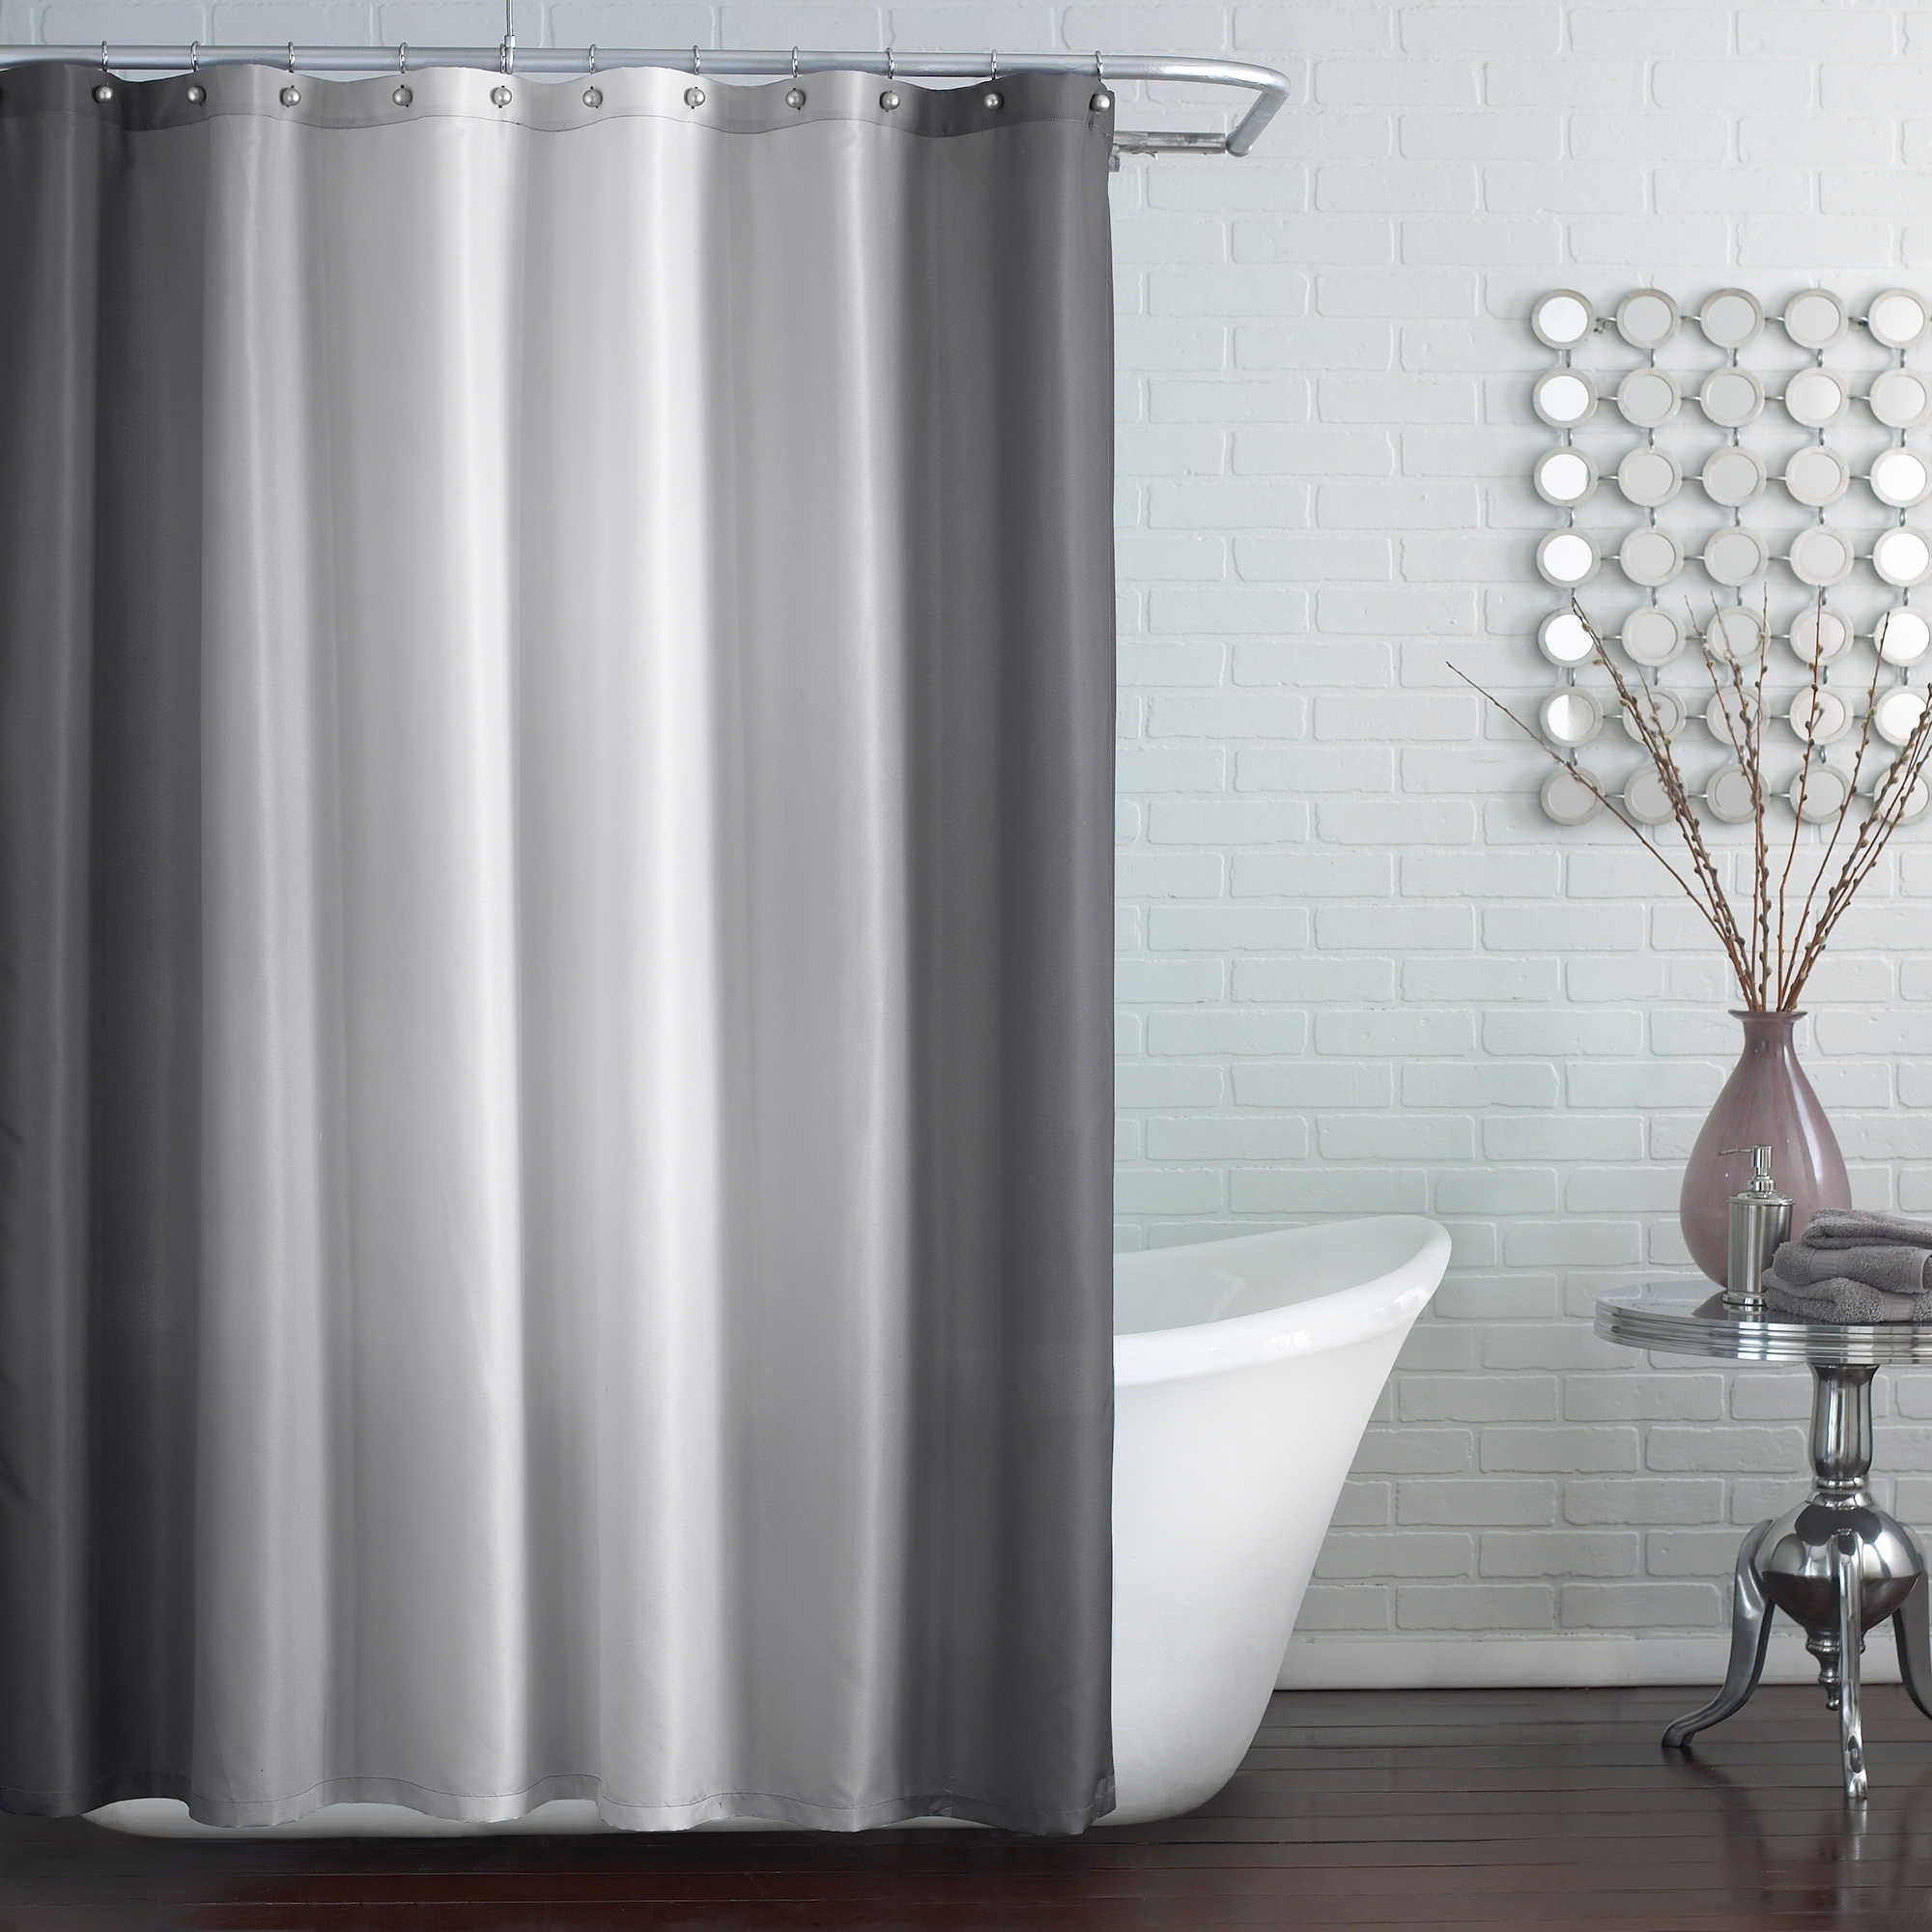 Beautiful Extra Long Shower Stall Curtain Check More At Https